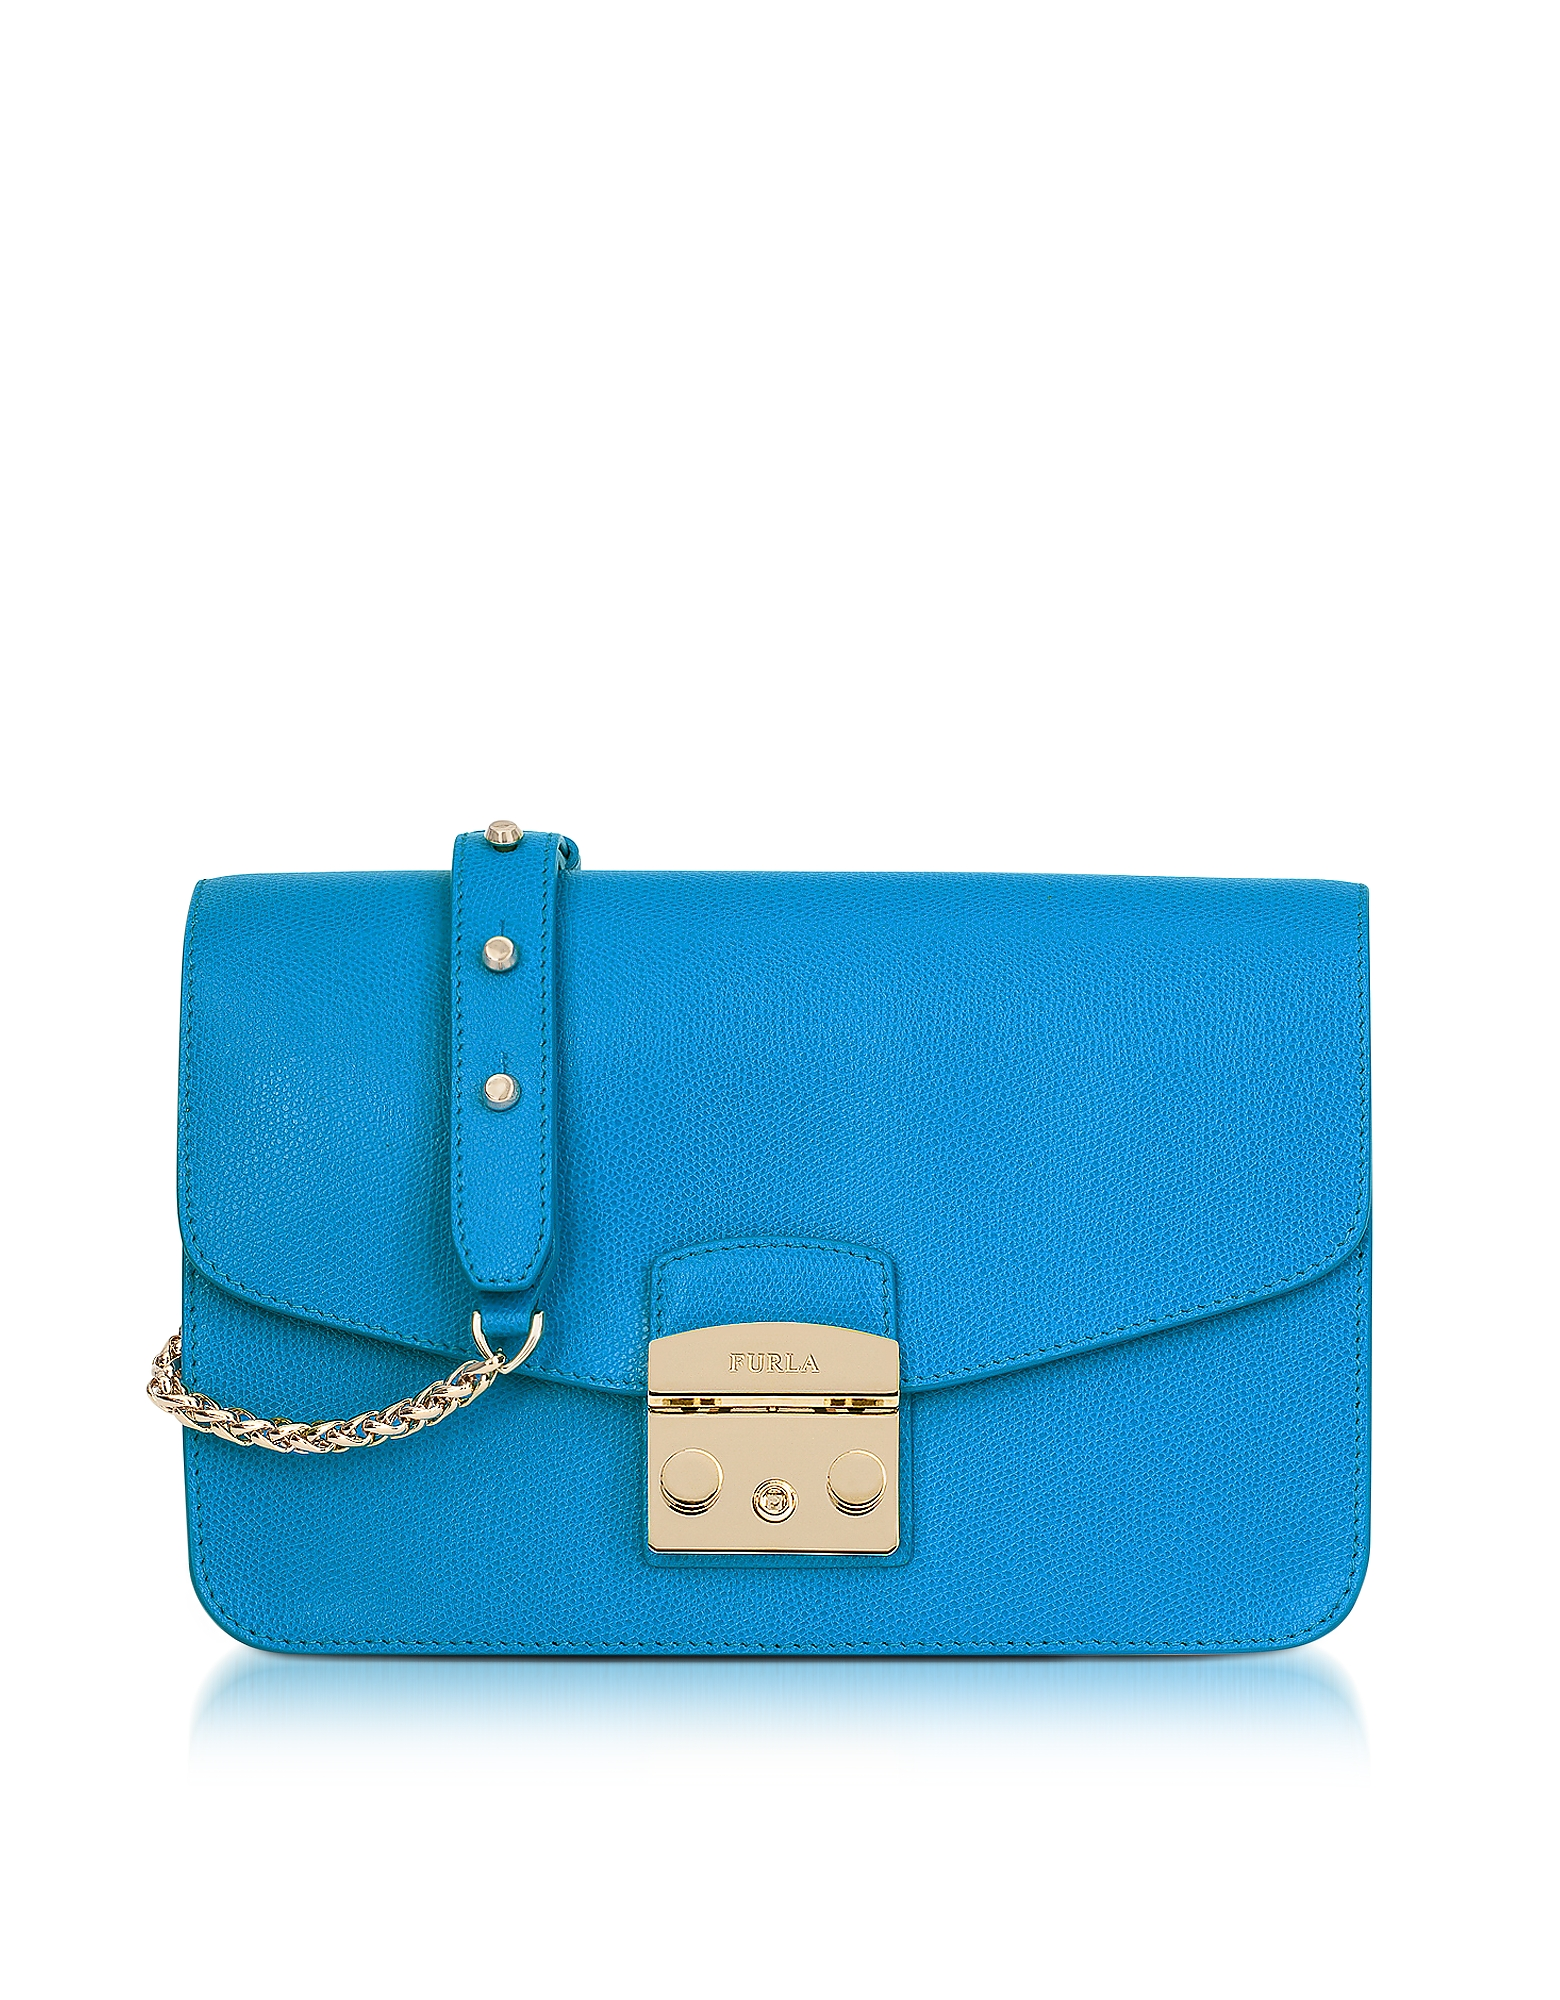 Furla Handbags, Cerulean Blue Metropolis Small Shoulder Bag